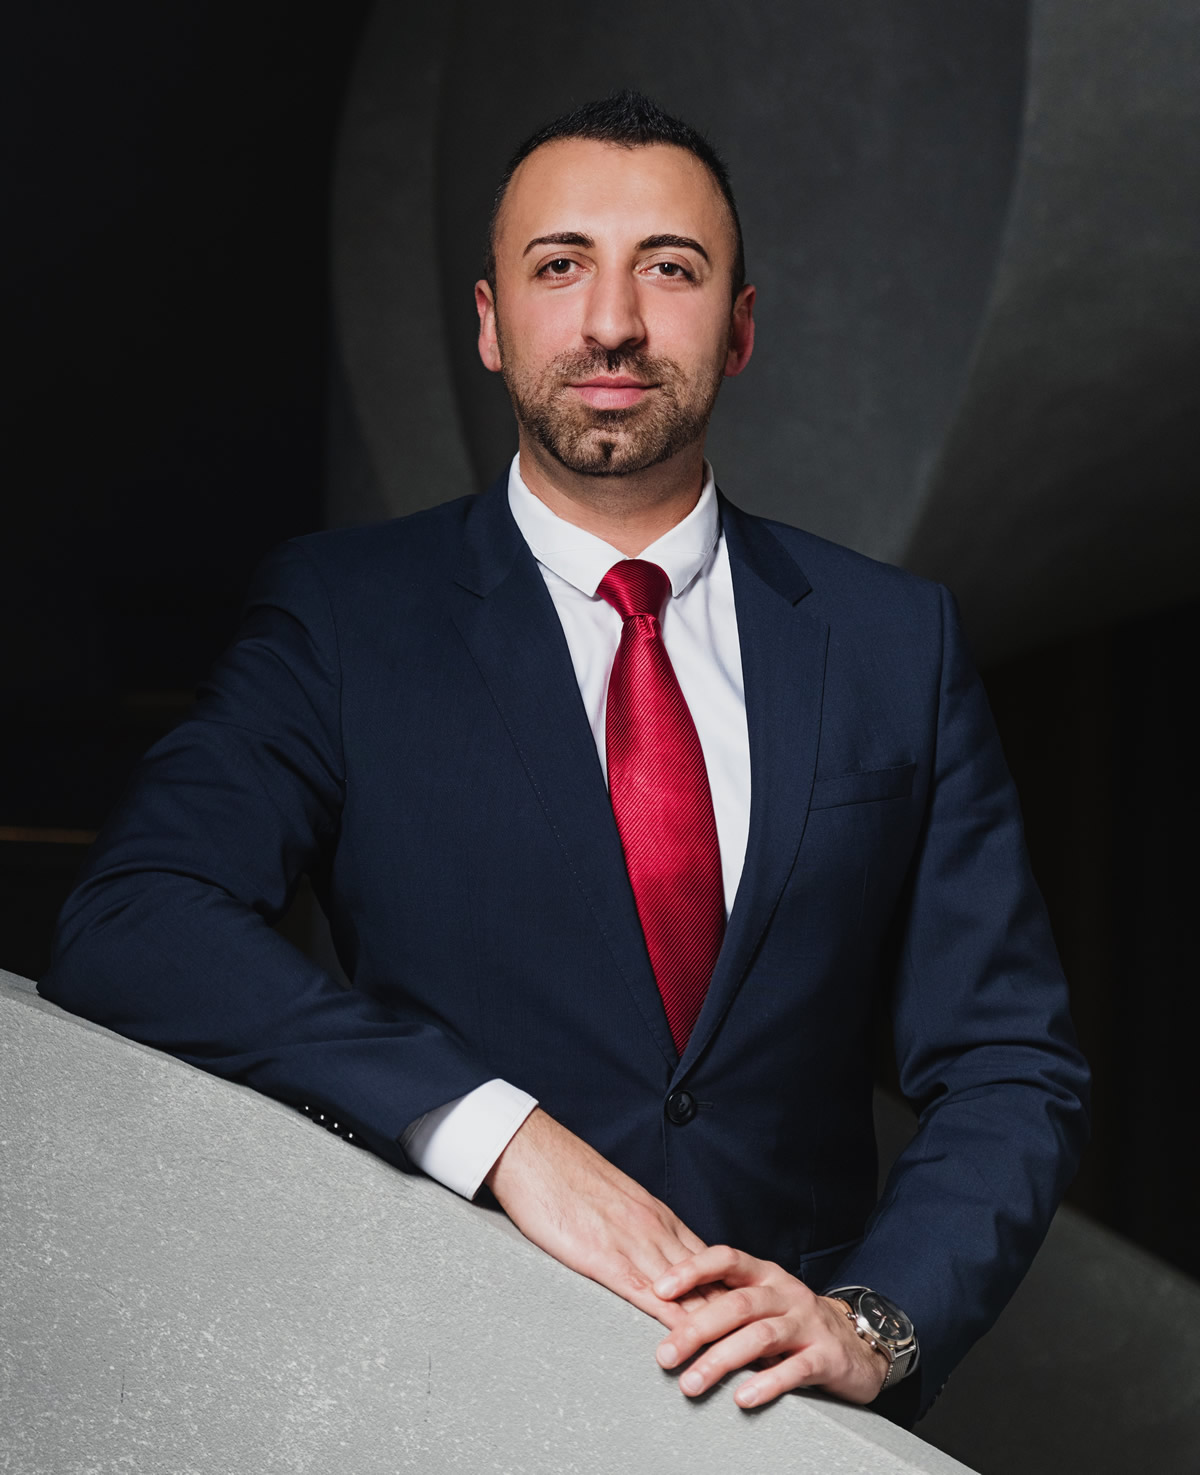 Orhan Usein, Head of Office